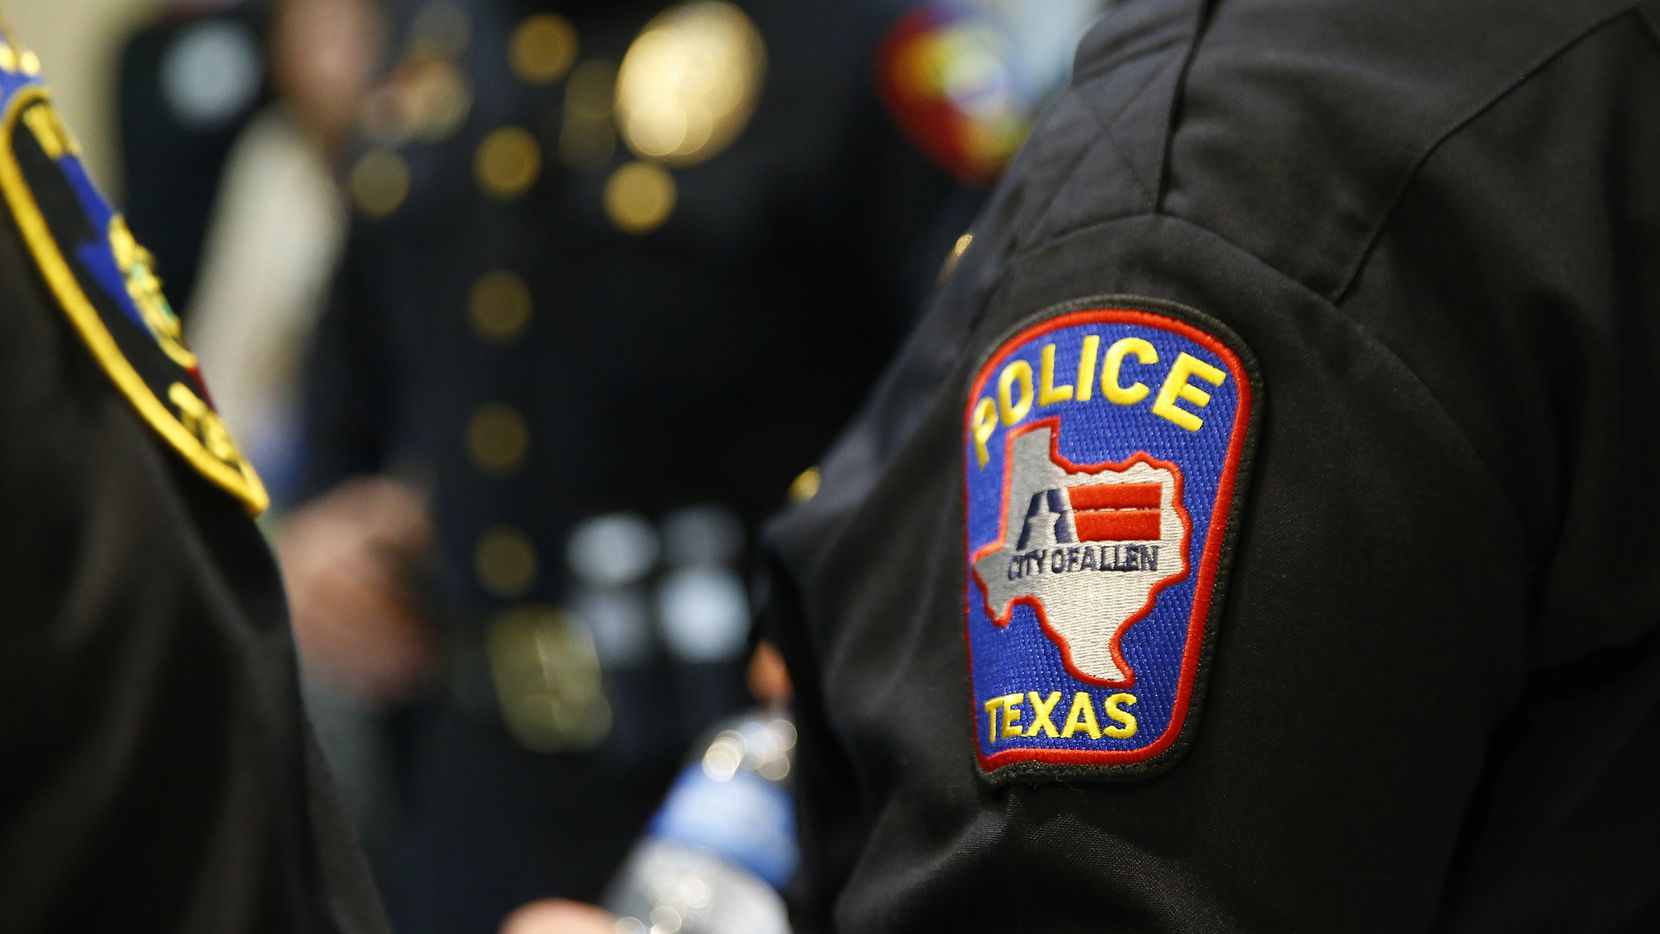 The pension plans for Dallas police and firefighters and Dallas city employees are among the 10 biggest in the state by number of participants.